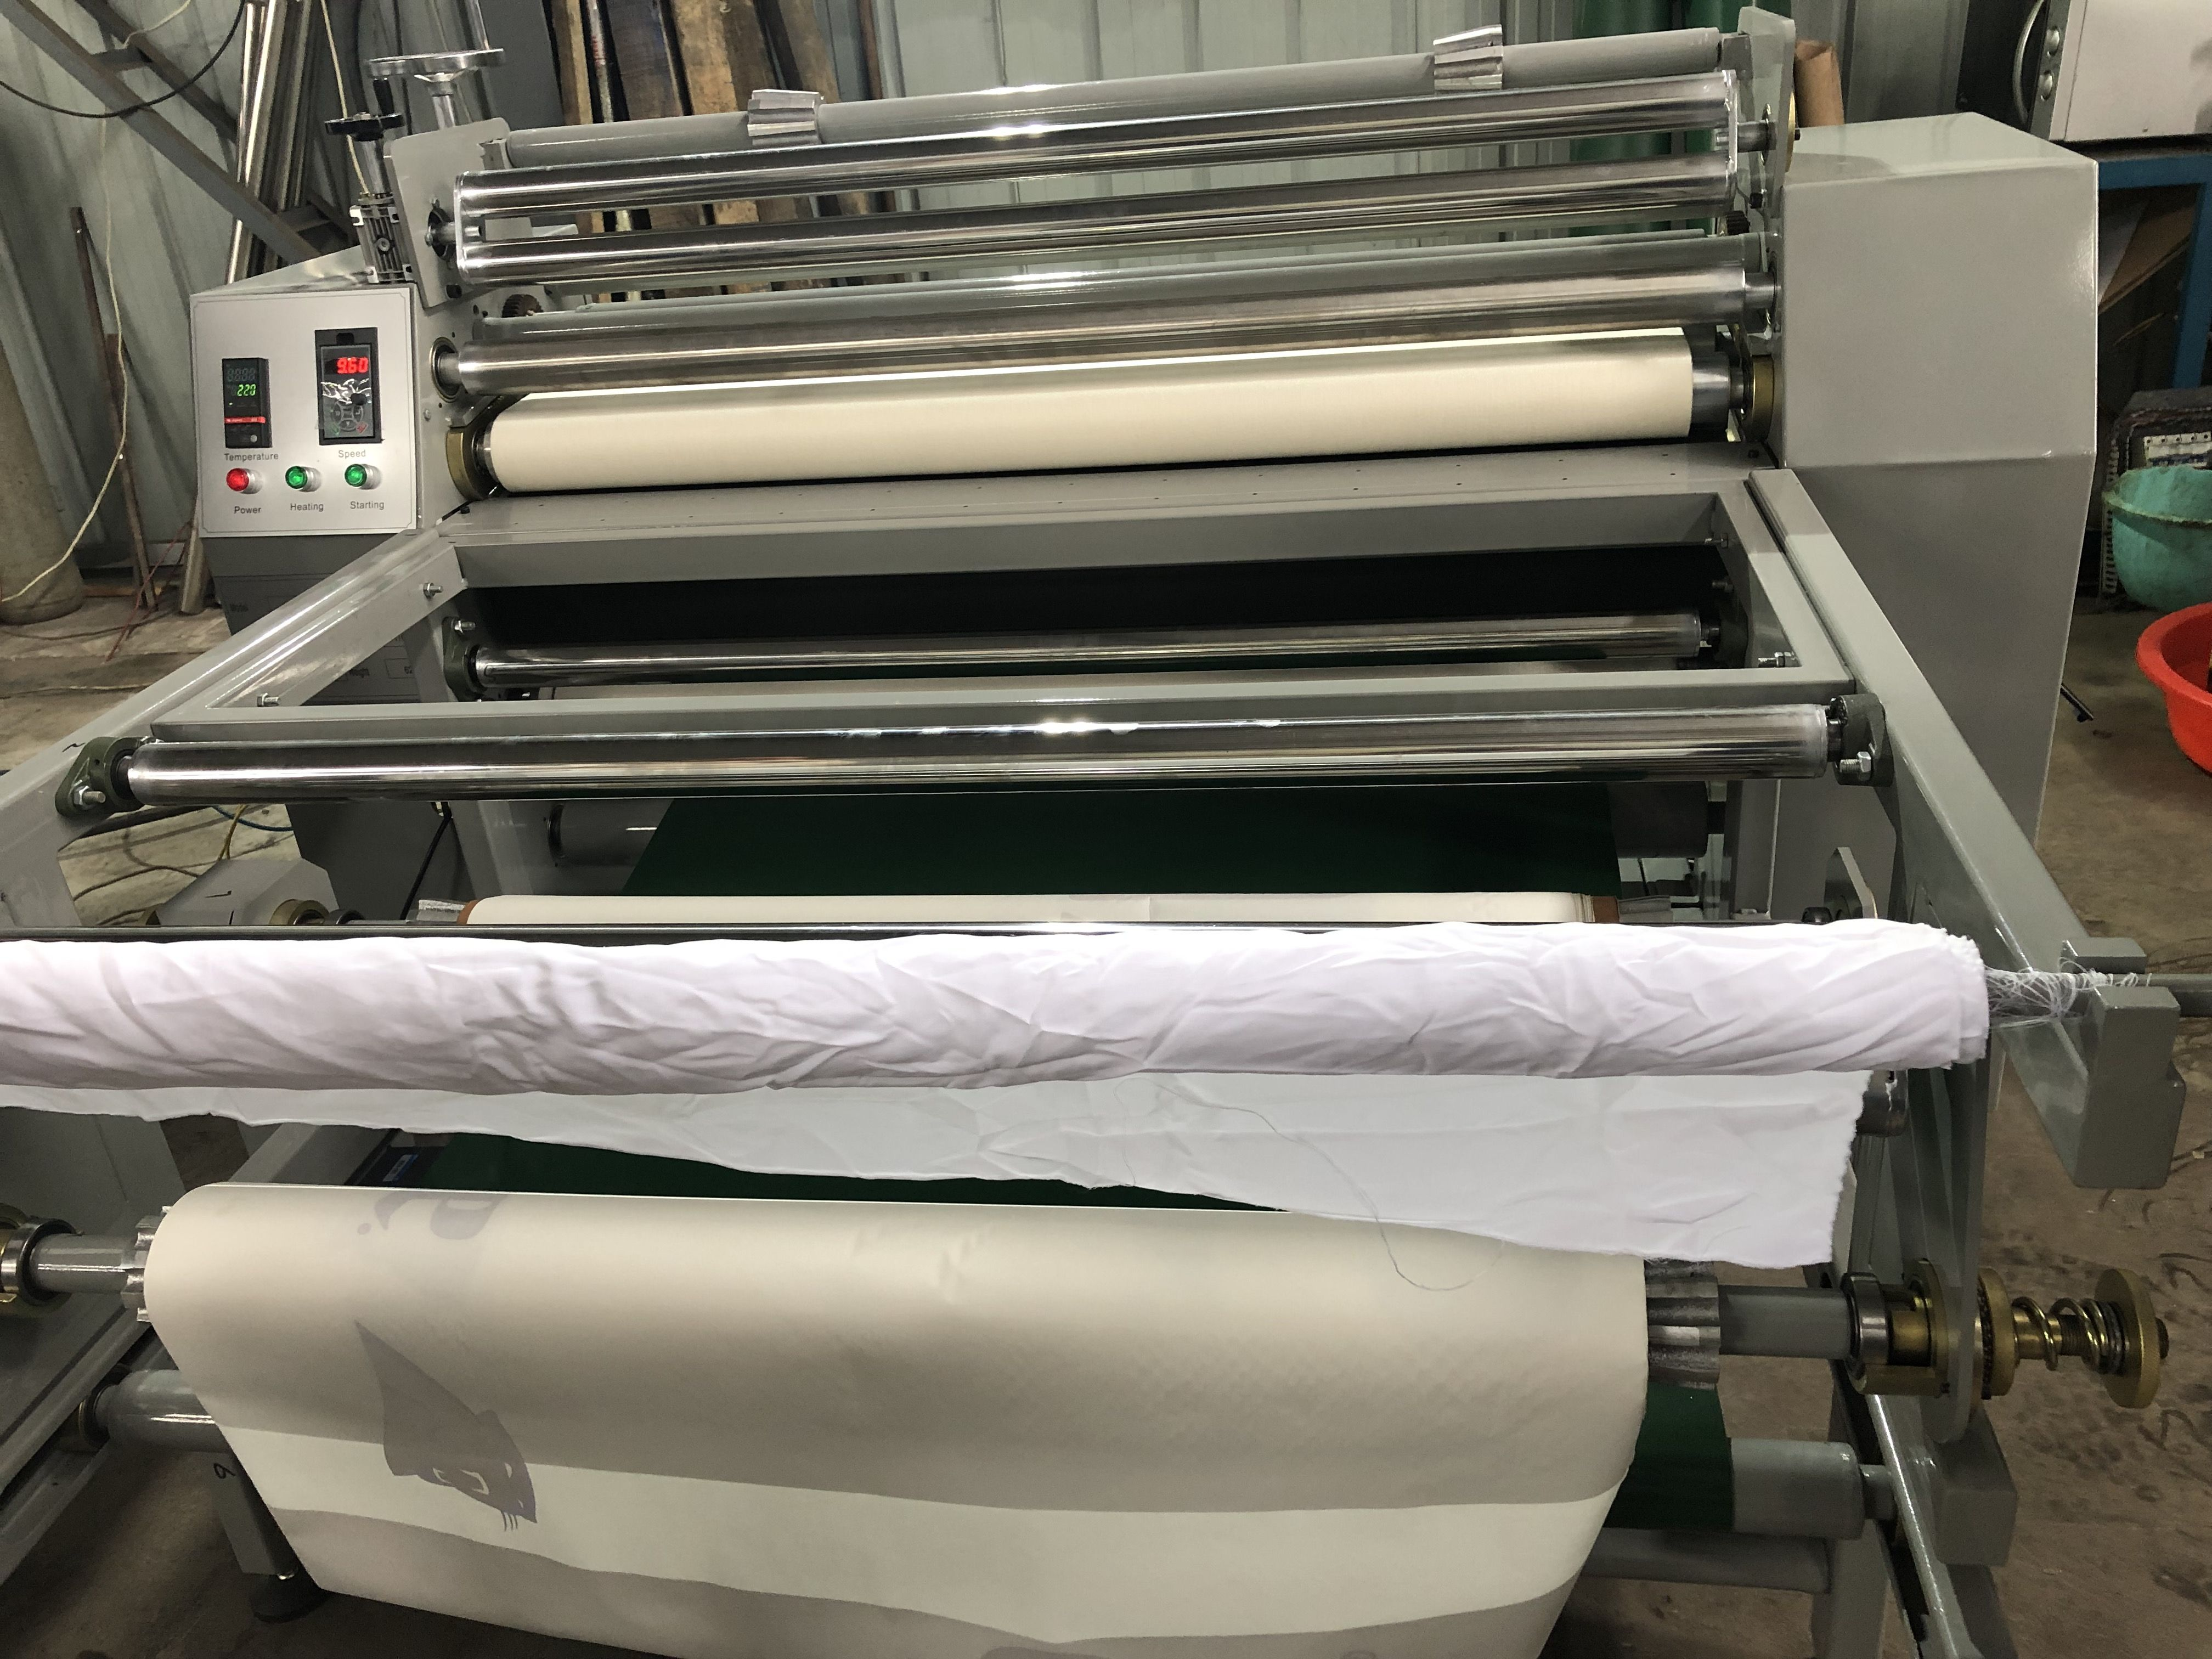 200 1200mm Full Automatic Small Sized Roller Printing Machine Affordanle Price Application Home Textile Fashion Clothing Sportswear Etc More Info Pls Conta